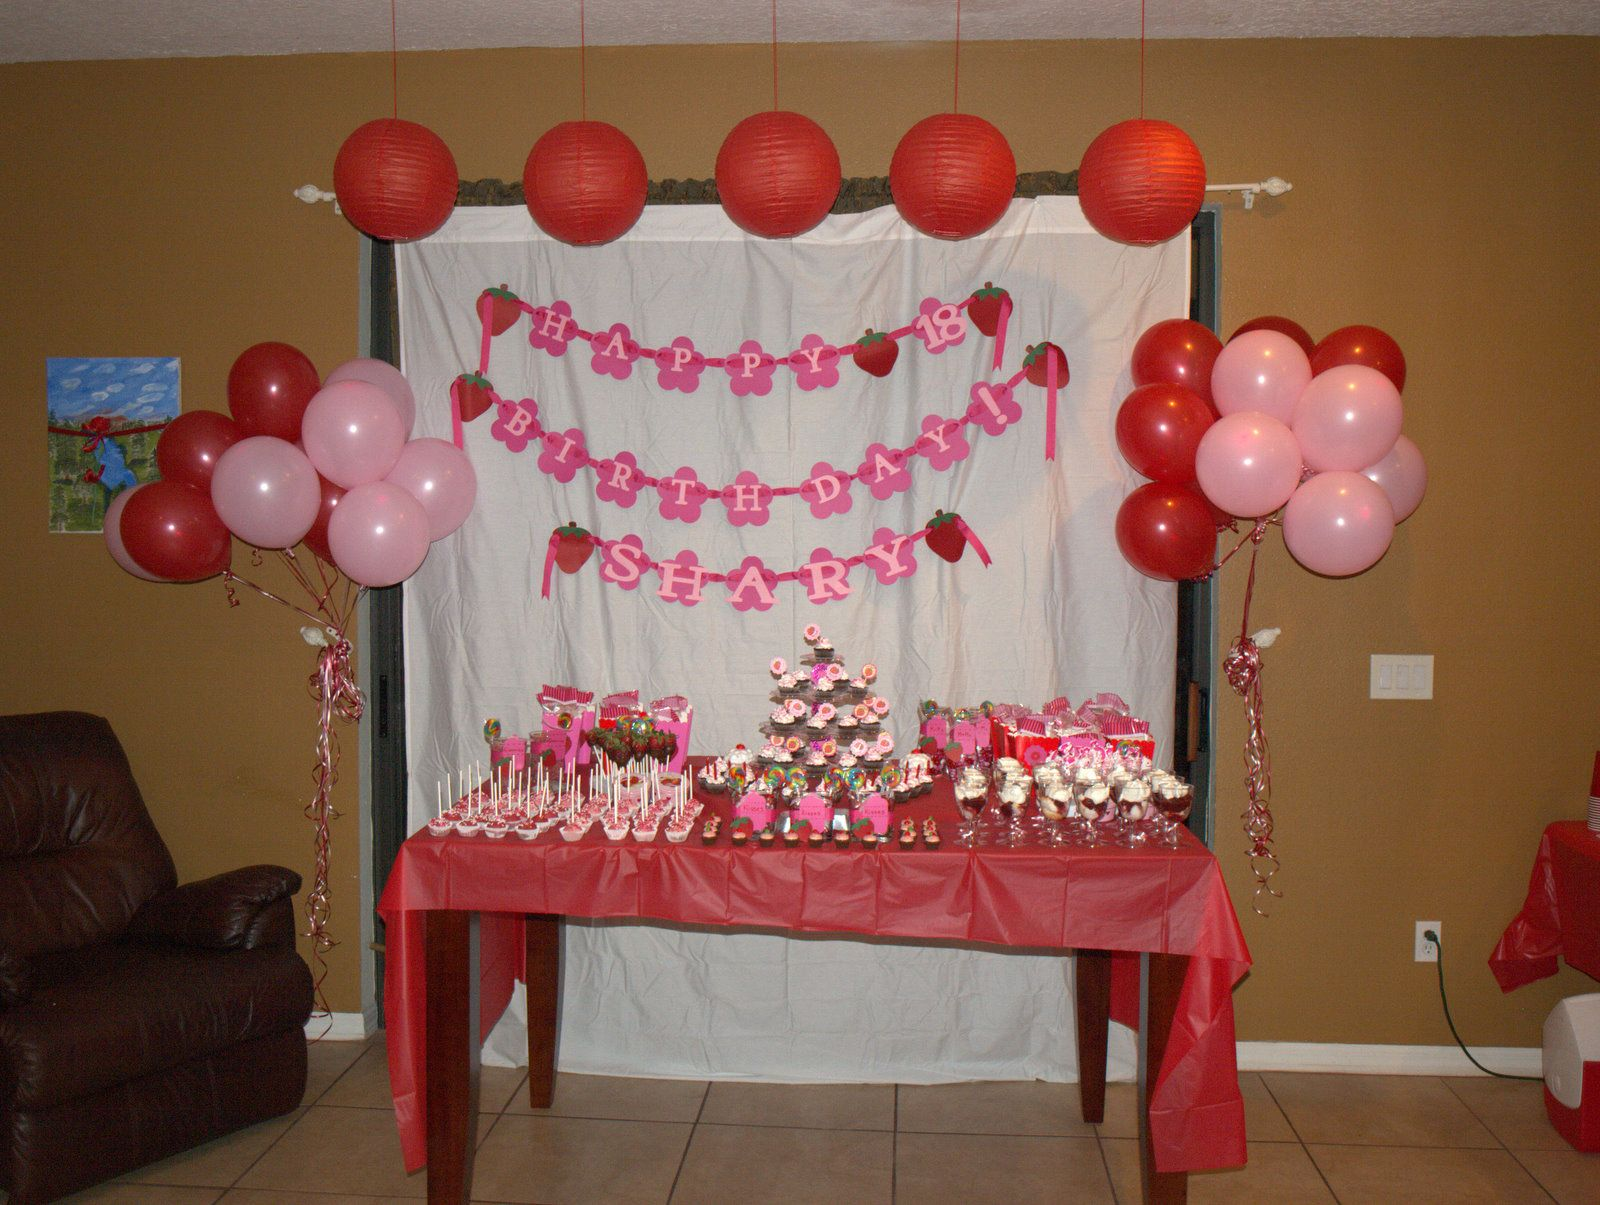 Birthday Cake Table Decoration Ideas : simple birthday table decoration ideas - Google Search ...